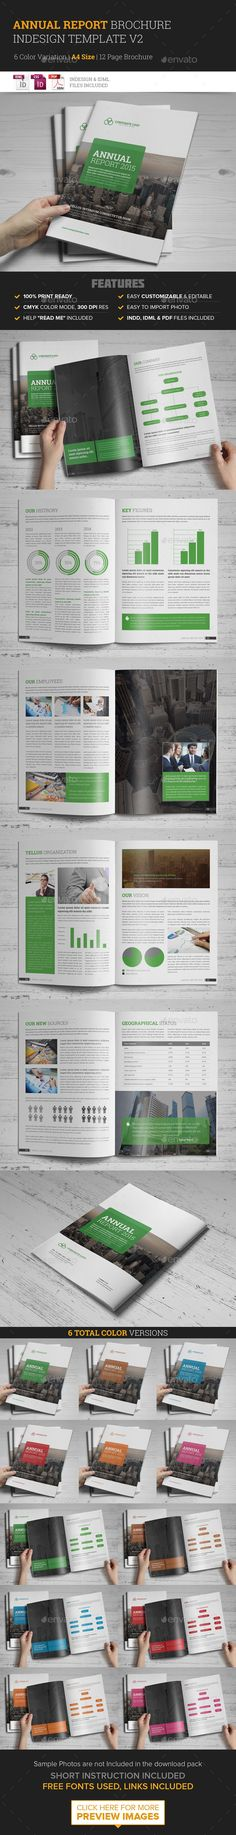 Buy Annual Report Brochure Indesign Template by JanySultana on GraphicRiver. Annual Report Brochure Indesign Template Ready to use for Annaul Report, Business Report, Corporate Brochure and C. Brochure Indesign, Design Brochure, Brochure Layout, Brochure Template, Pixel Design, Web Design, Layout Design, Corporate Design, Corporate Brochure